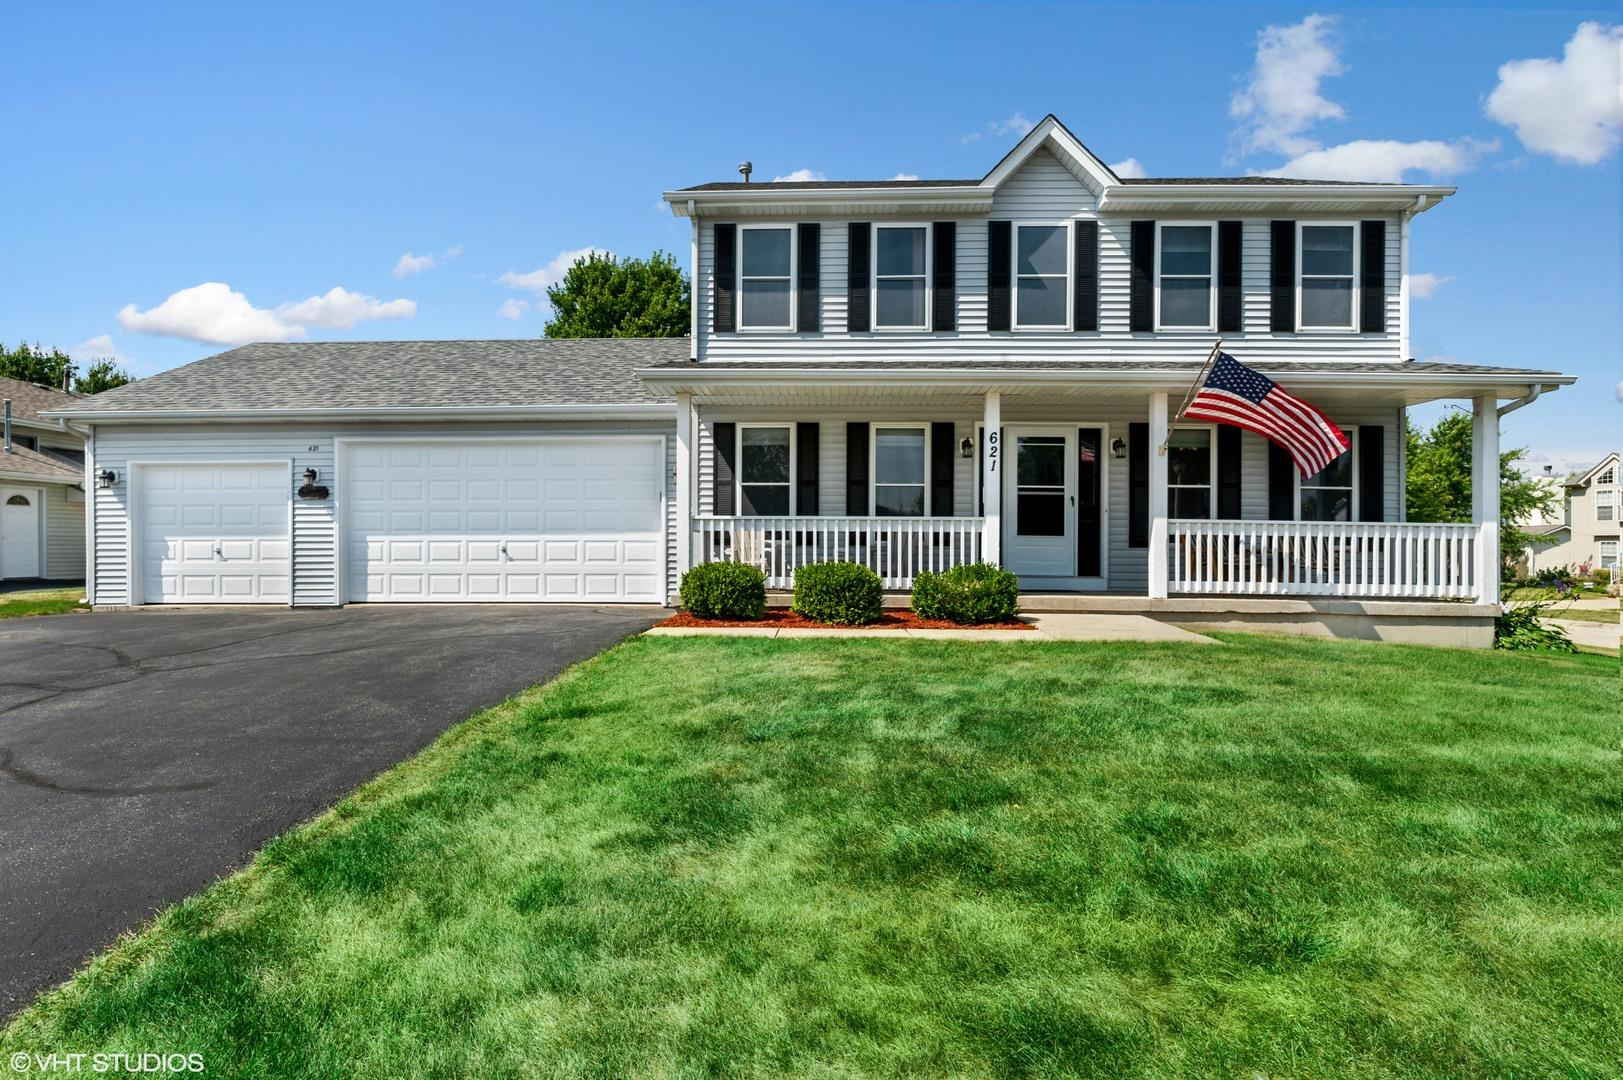 621 WHITMORE Trail, McHenry, IL 60050 - #: 10841863